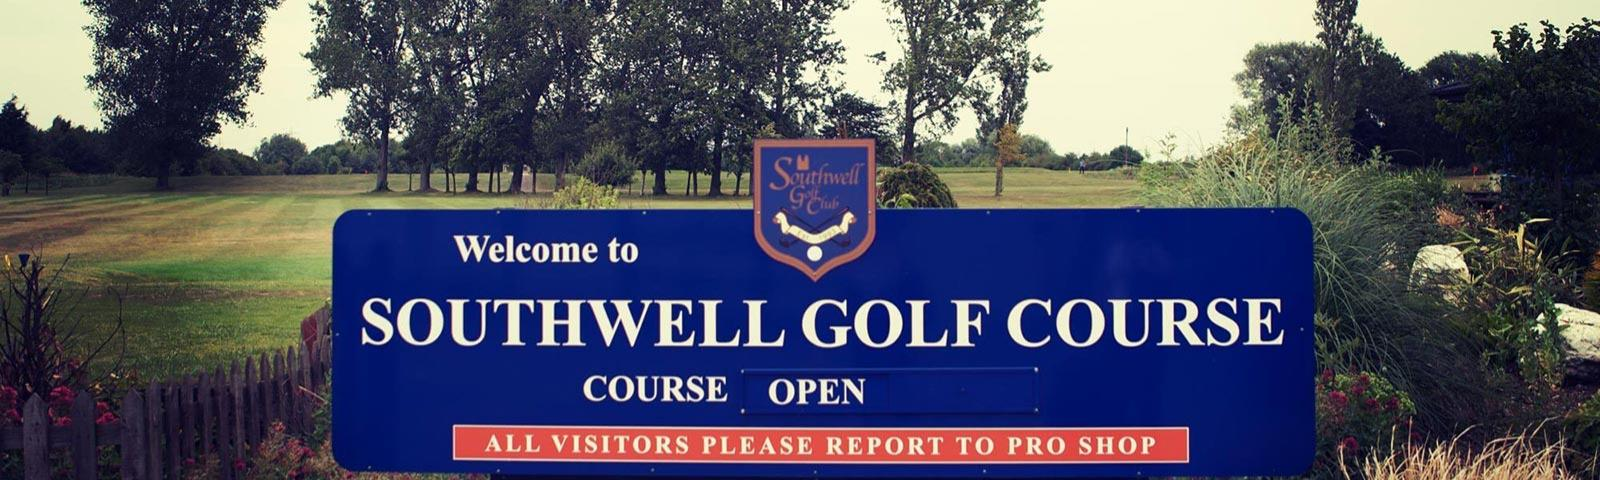 Signage featuring the Southwell Golf Course logo.